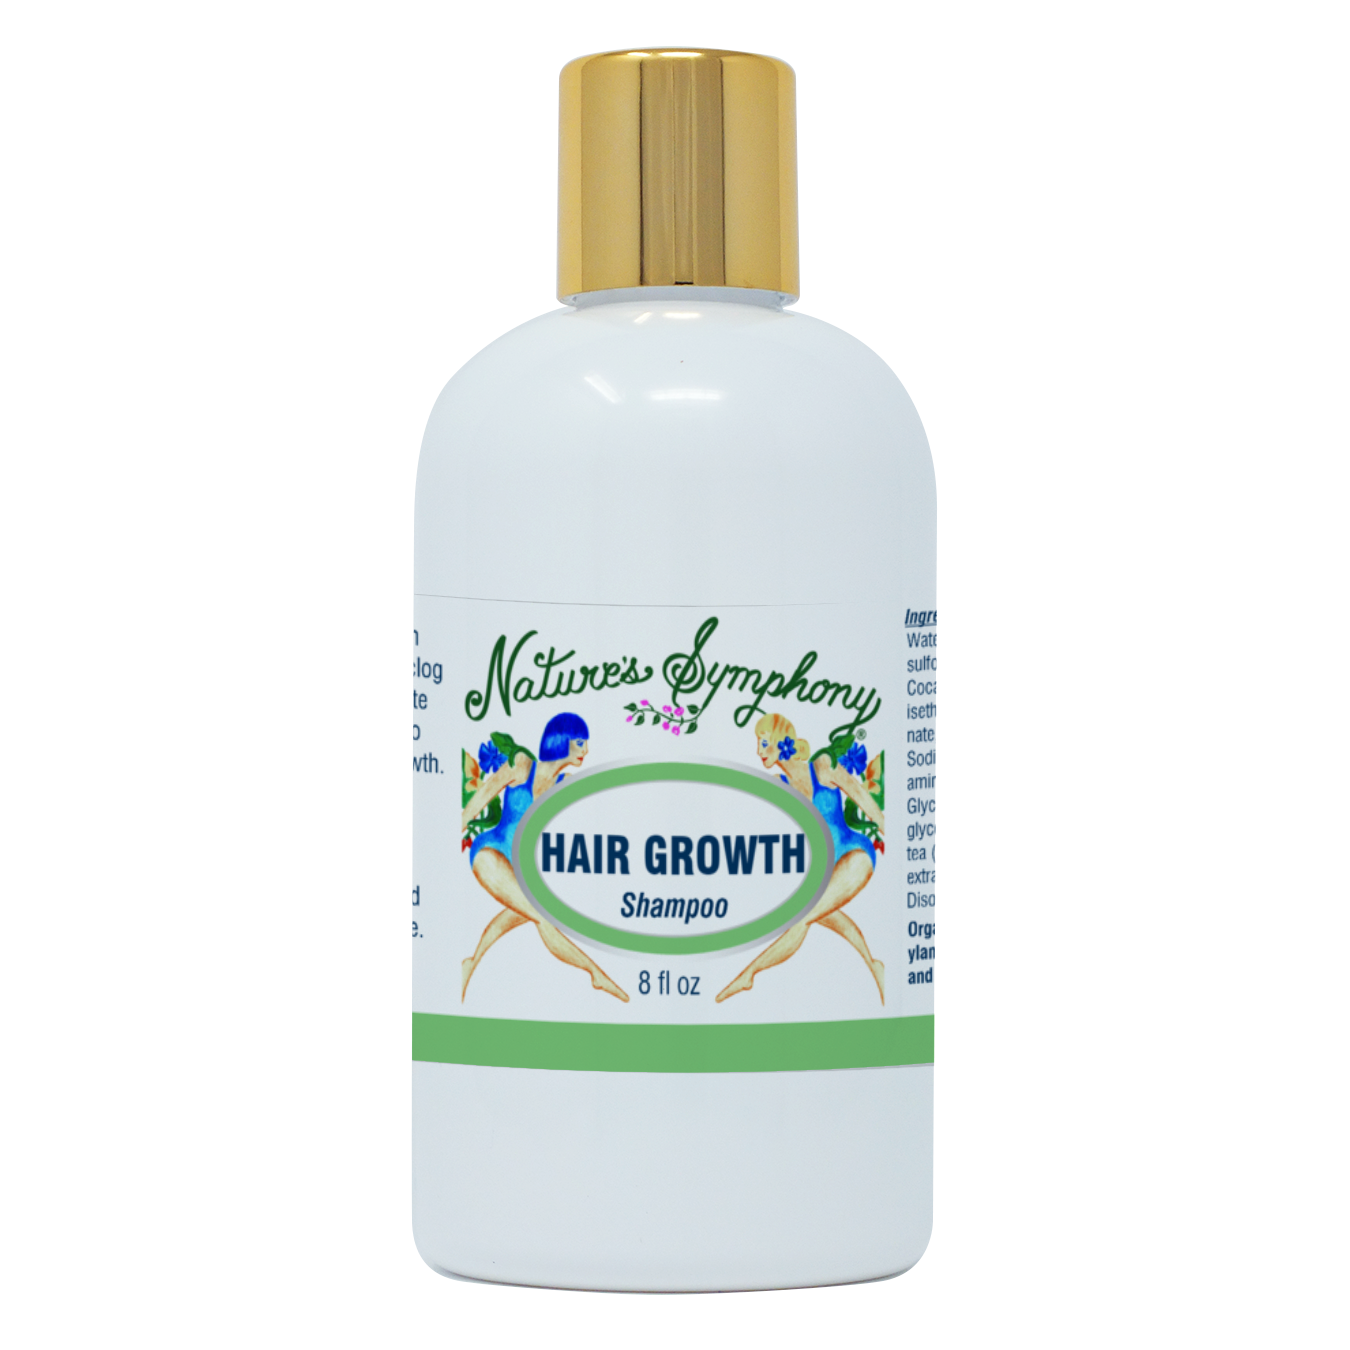 Hair Growth, Organic Shampoo - 8 fl. oz. (236ml)